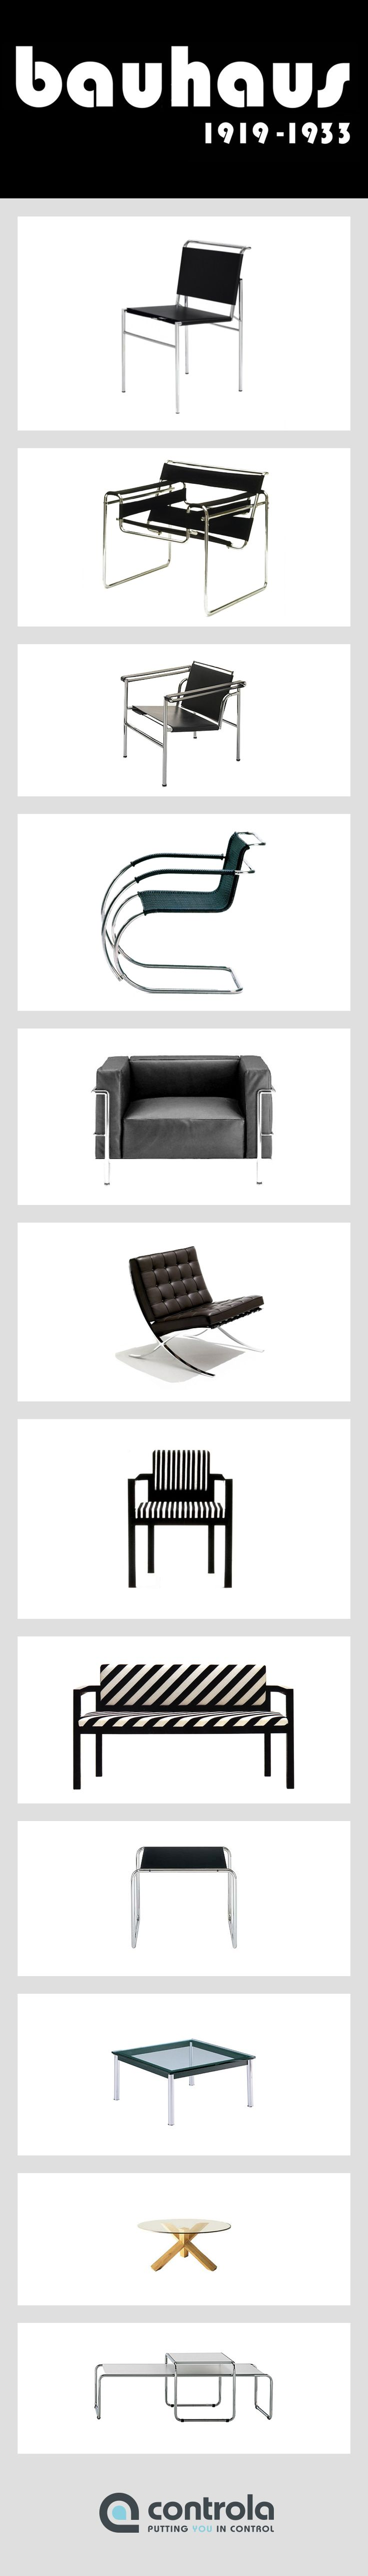 die 25 besten ideen zu stuhl design auf pinterest stuhl minimalistische m bel und m beldesign. Black Bedroom Furniture Sets. Home Design Ideas